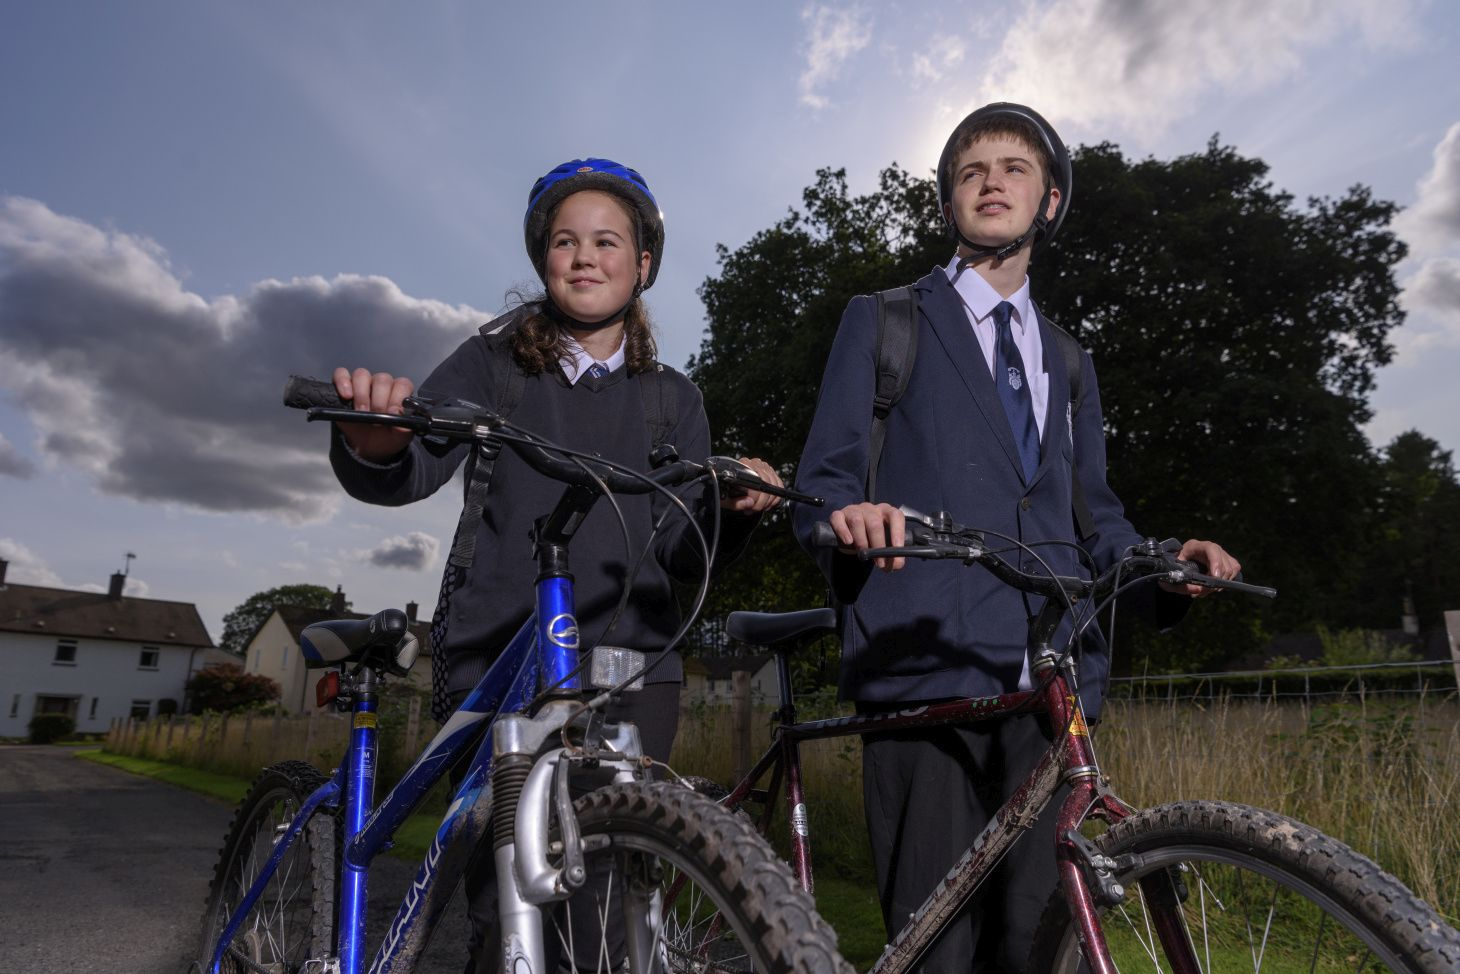 2 school children stand with their bikes